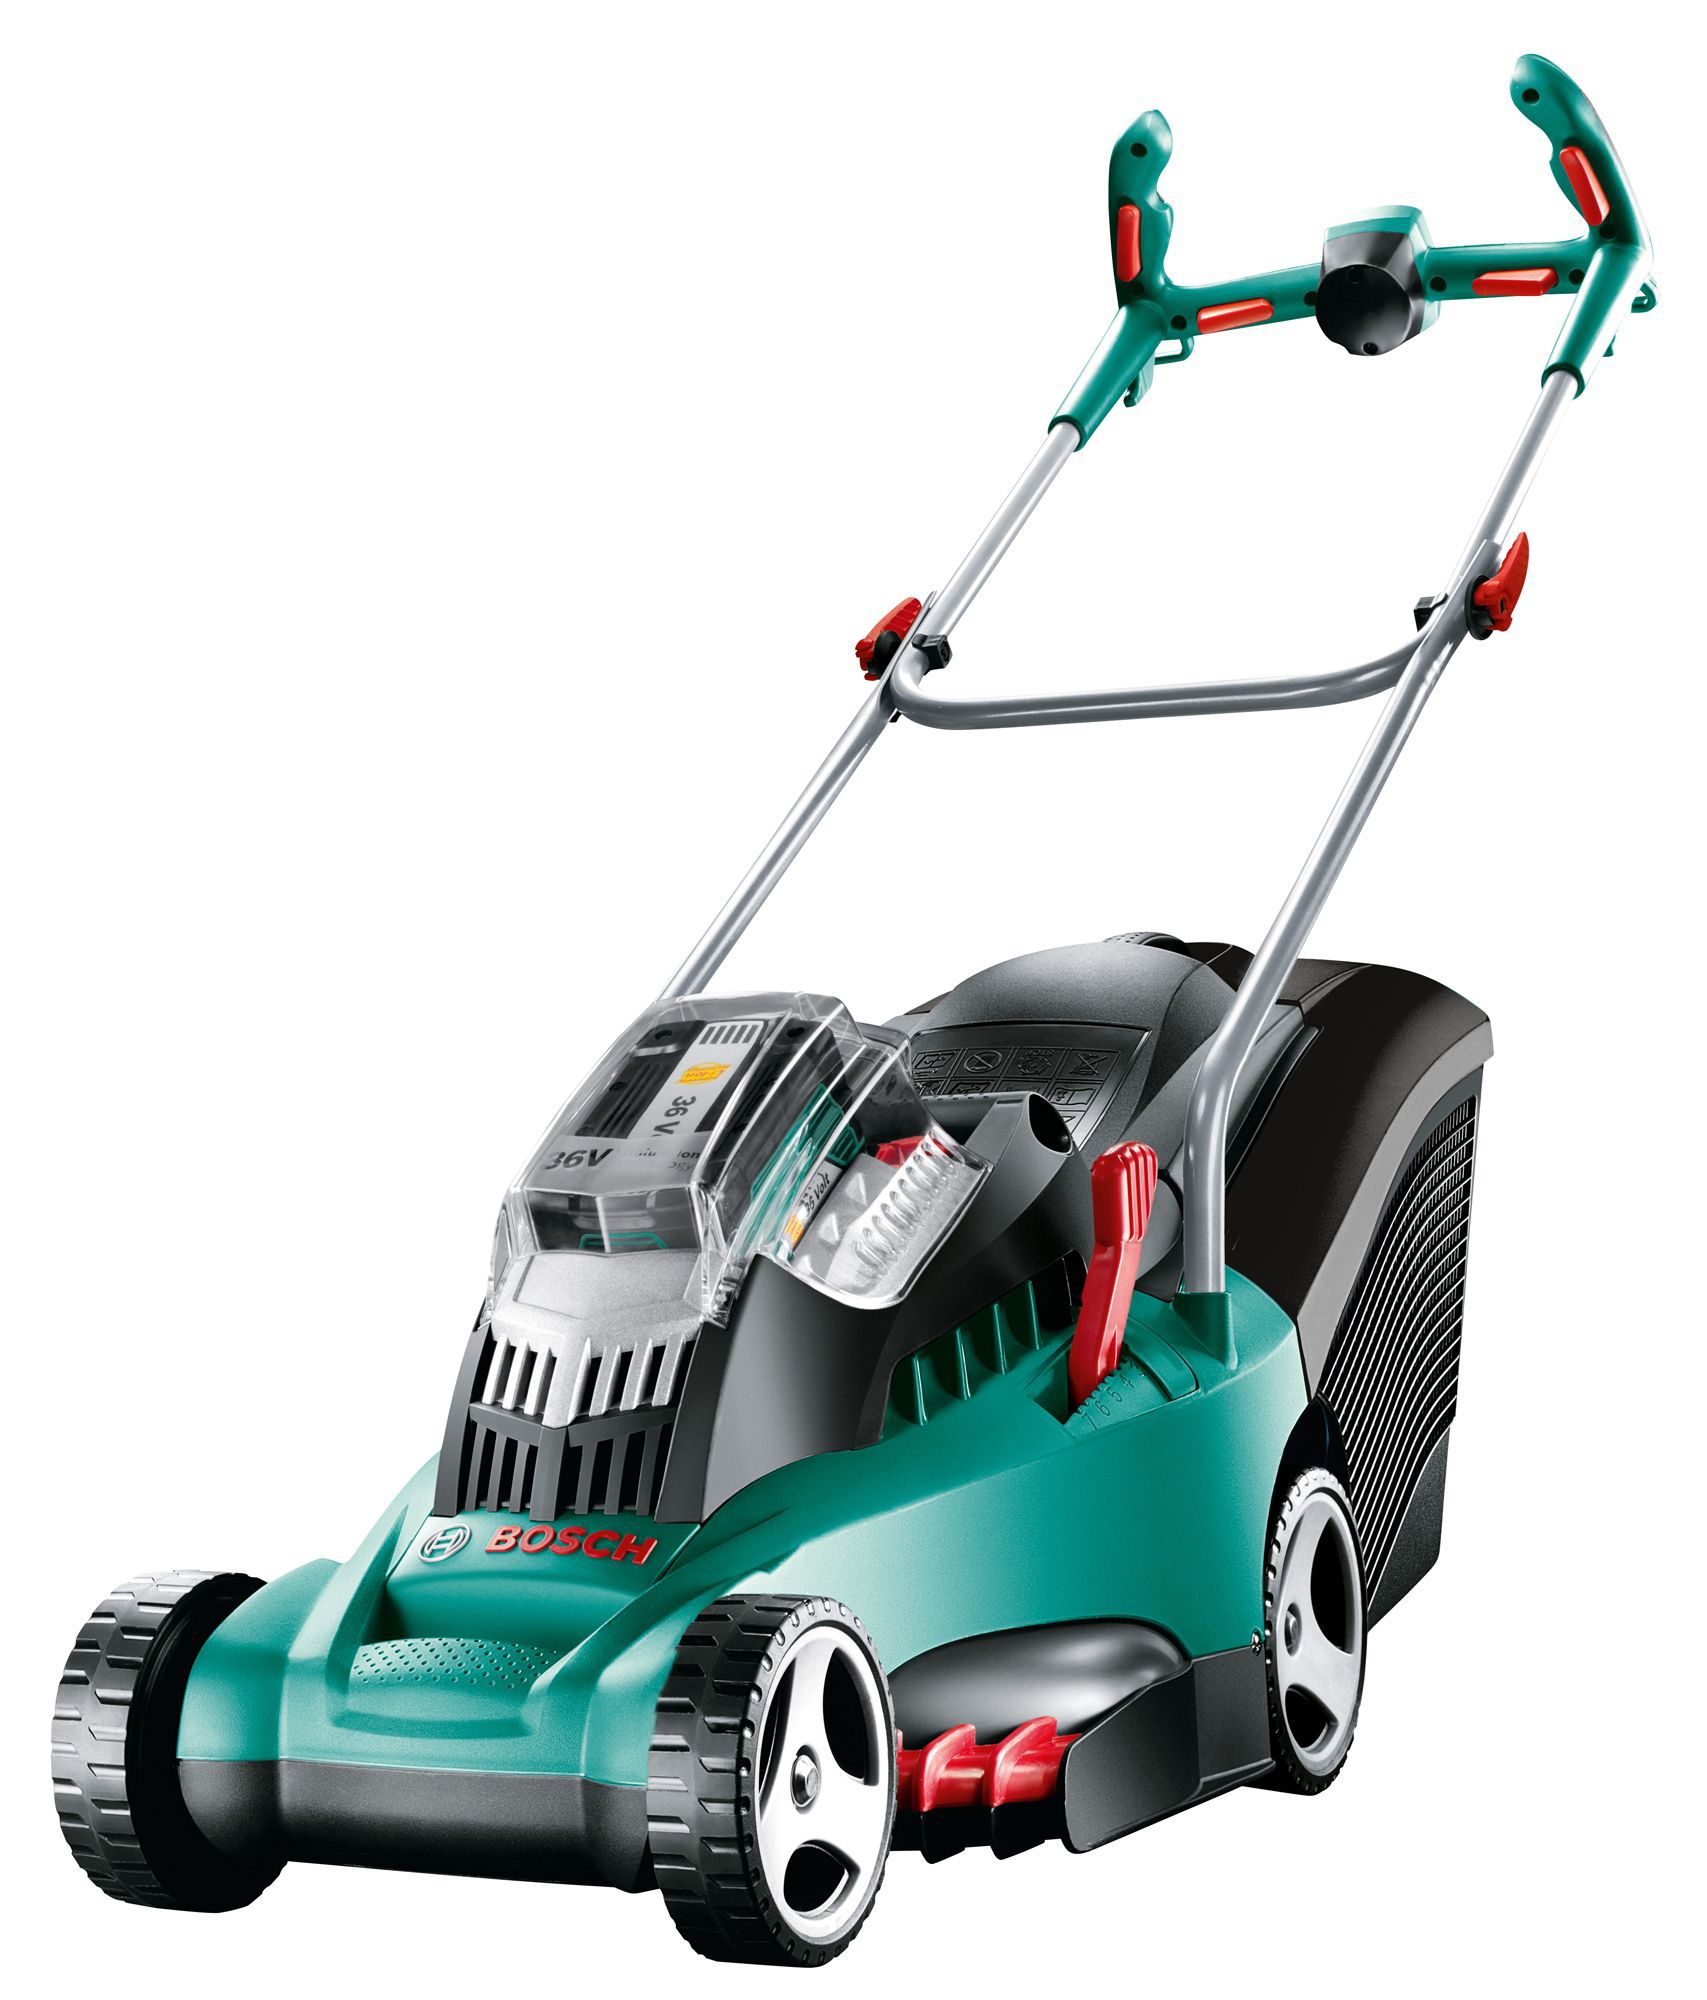 bosch rotak 370 li ultra cordless lithium ion rotary blade battery powered lawnmower. Black Bedroom Furniture Sets. Home Design Ideas